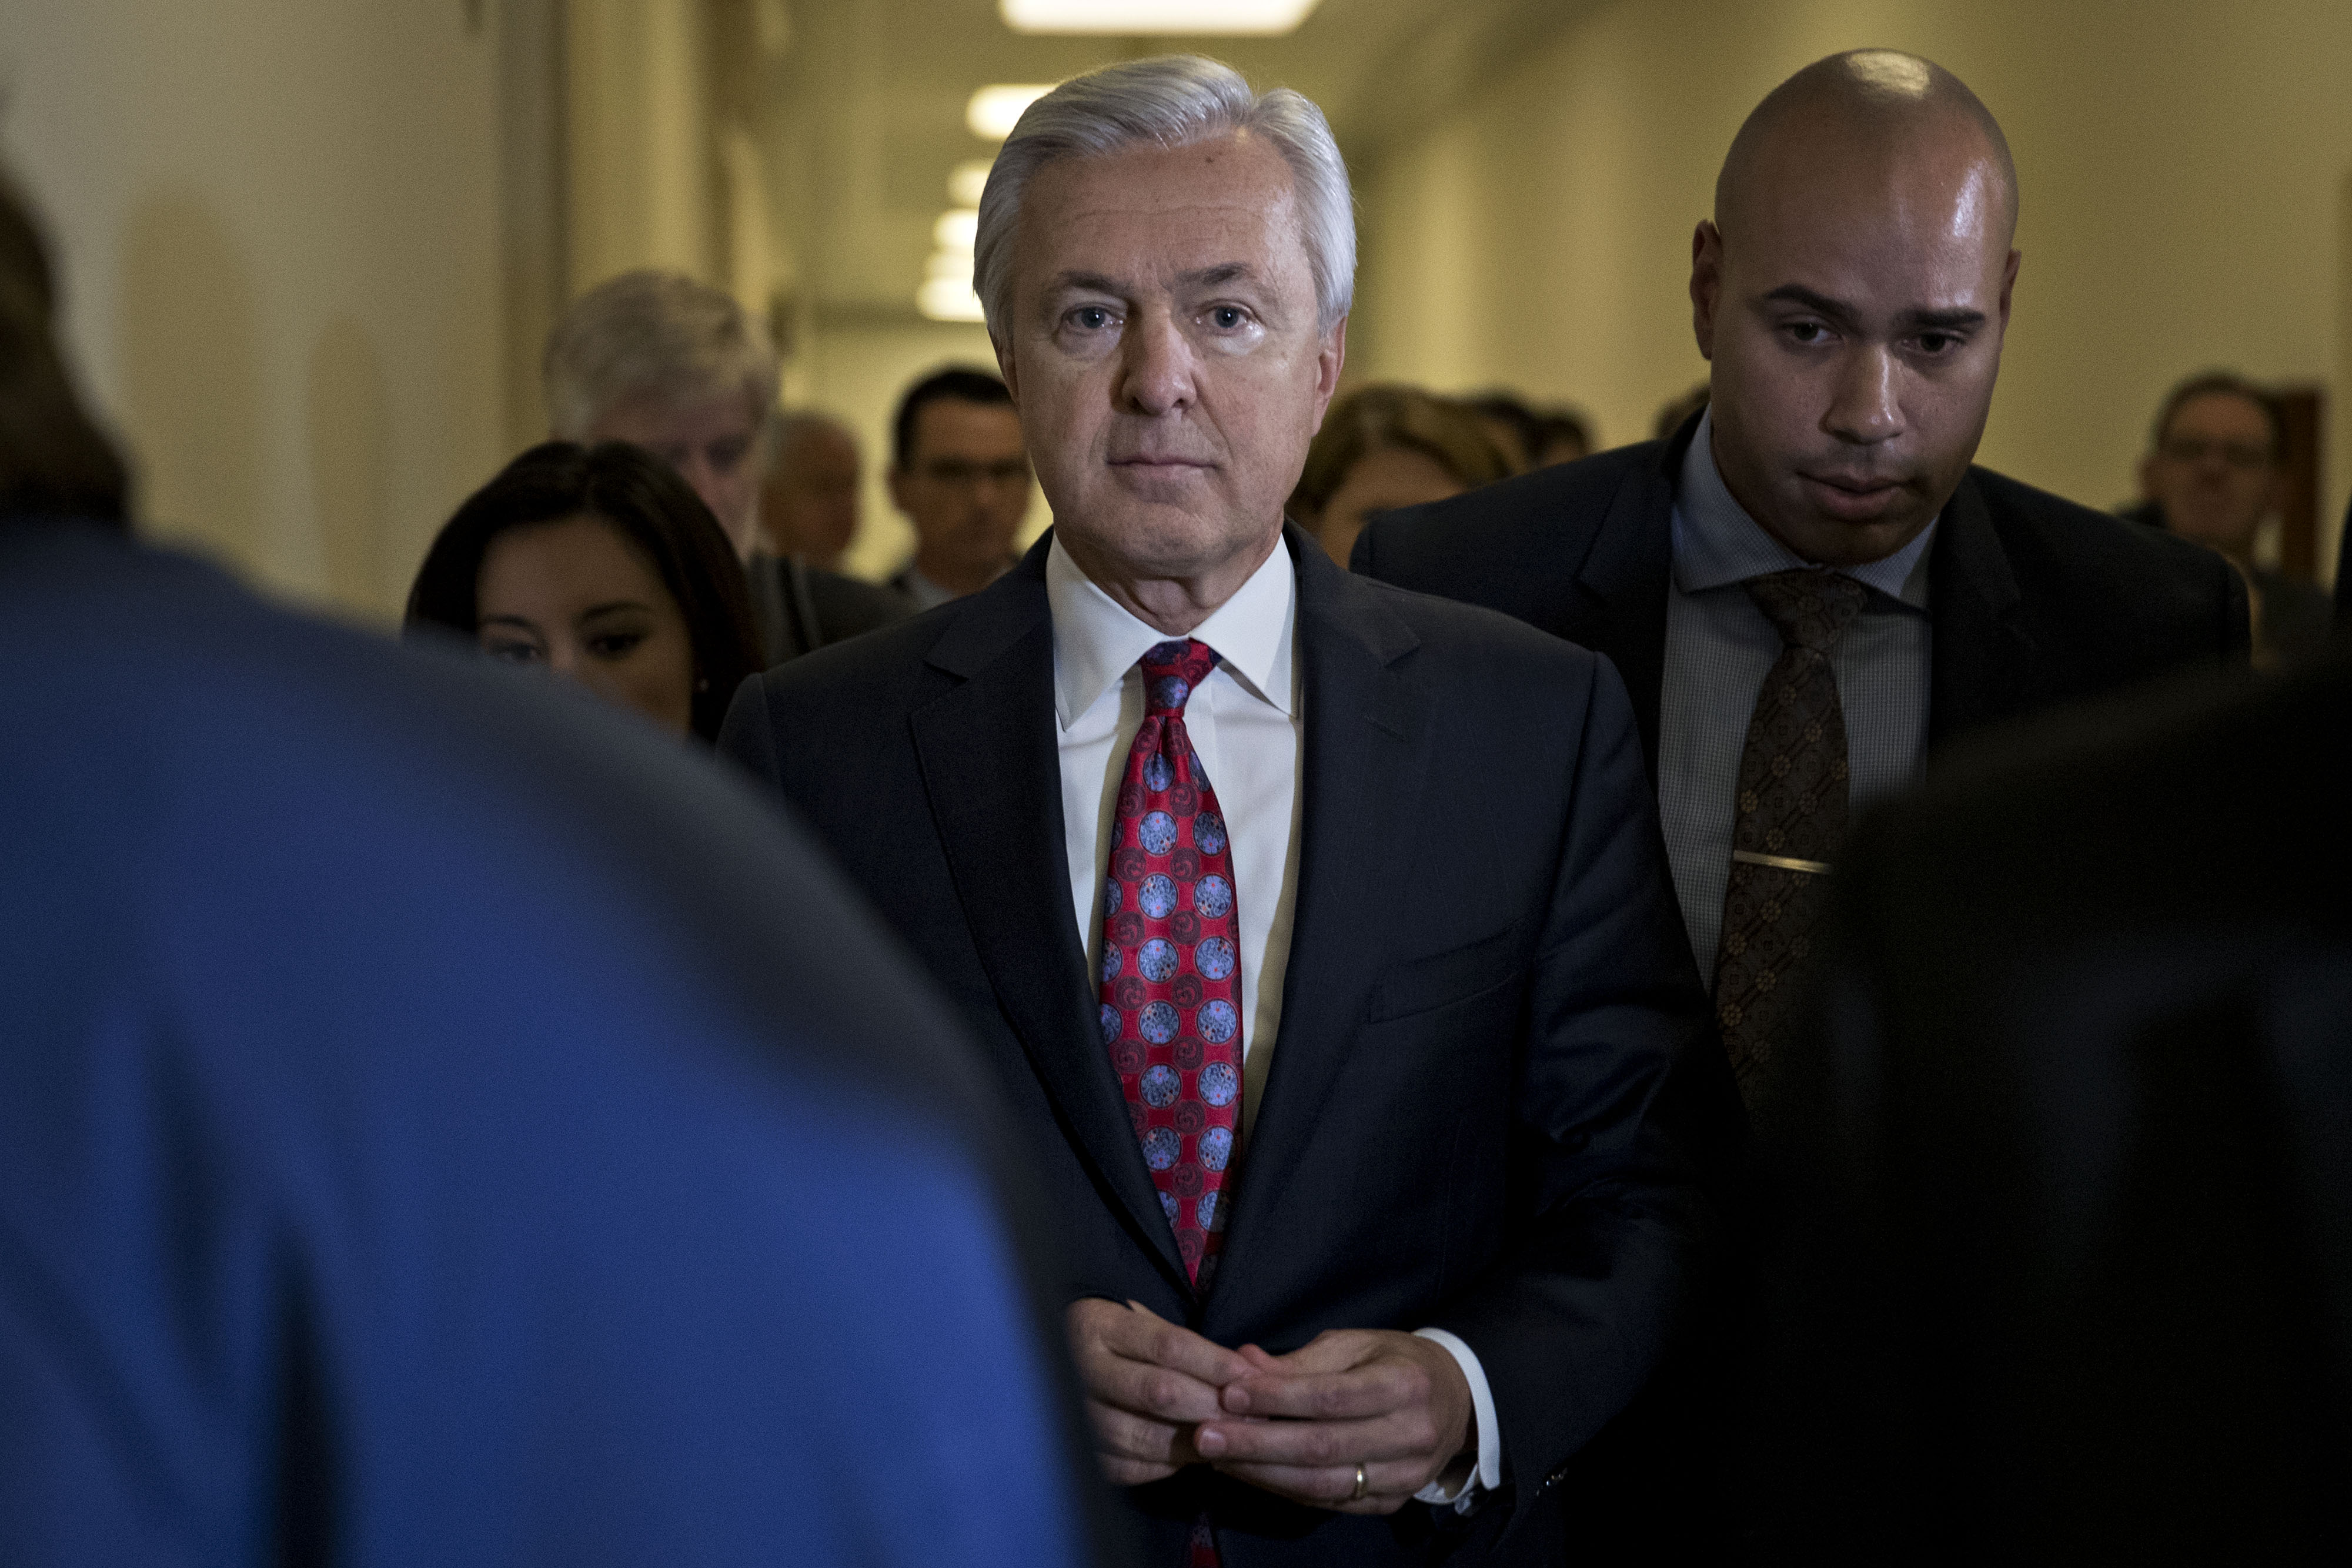 Wells Fargo will claw back approximately $28 million of former CEO John Stumpf's bonus, which was paid in March 2016.